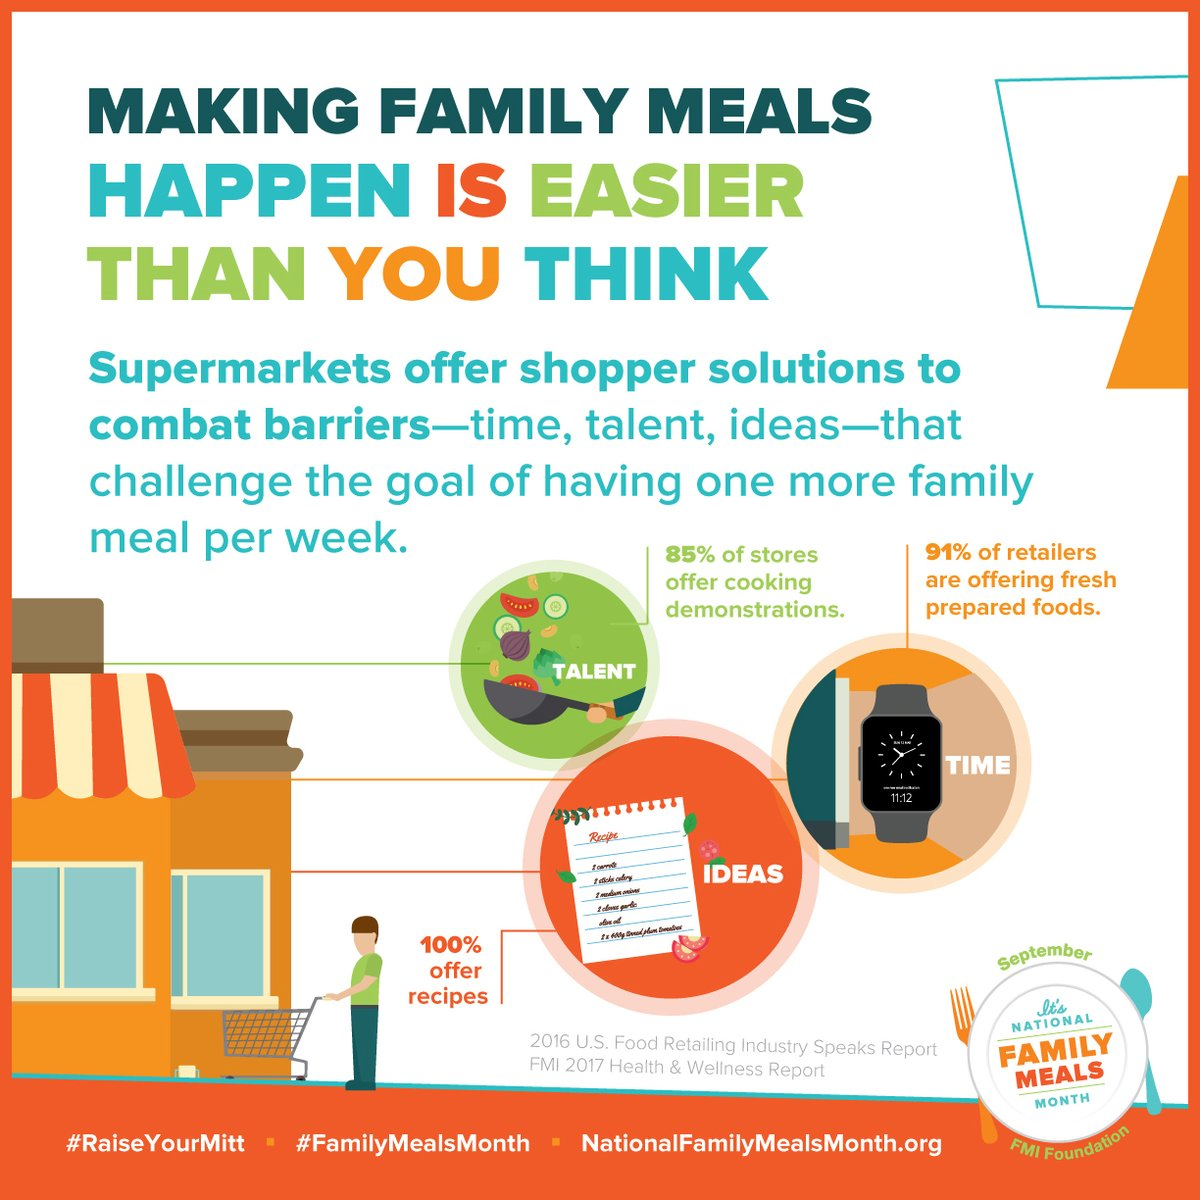 Go out of your comfort zone and try something new for #FamilyMealsMonth. See what your local retailers offer by following their social media pages, visiting their website and flipping through their weekly ads. https://t.co/s1Buh5Xxja